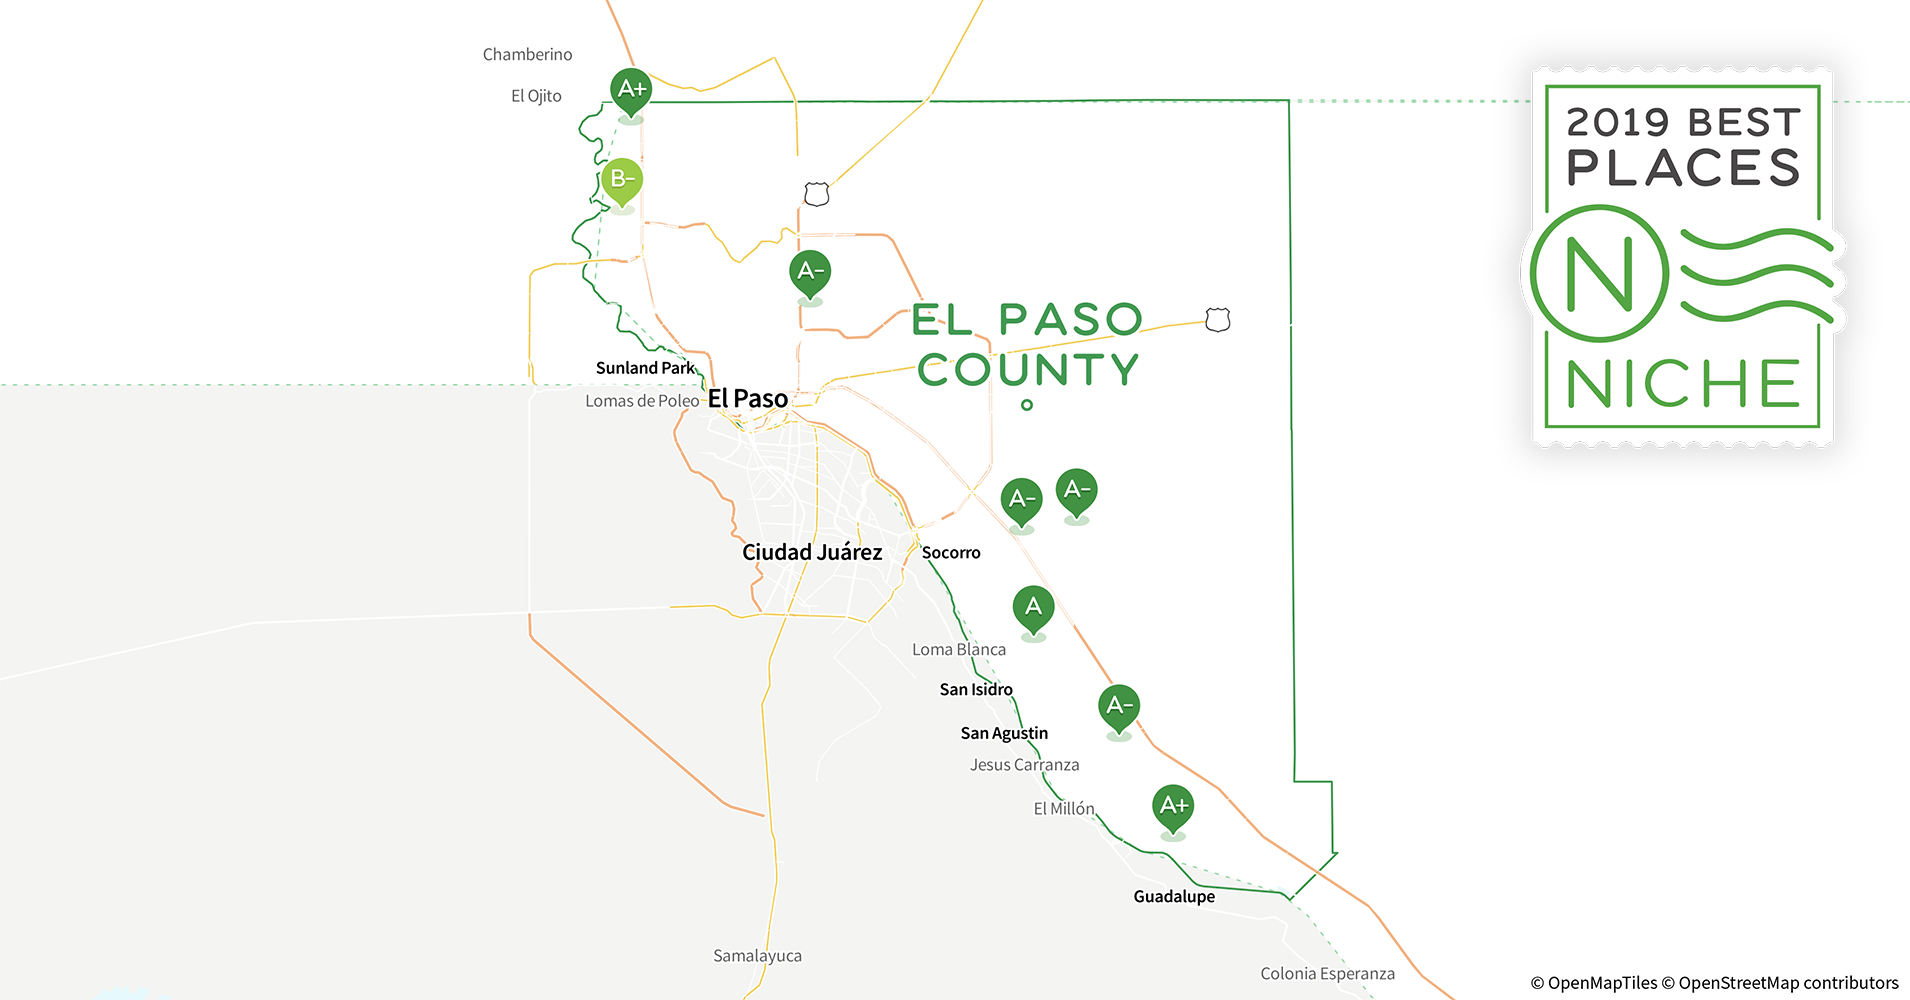 2019 Best Zip Codes To Buy A House In El Paso County Tx Niche